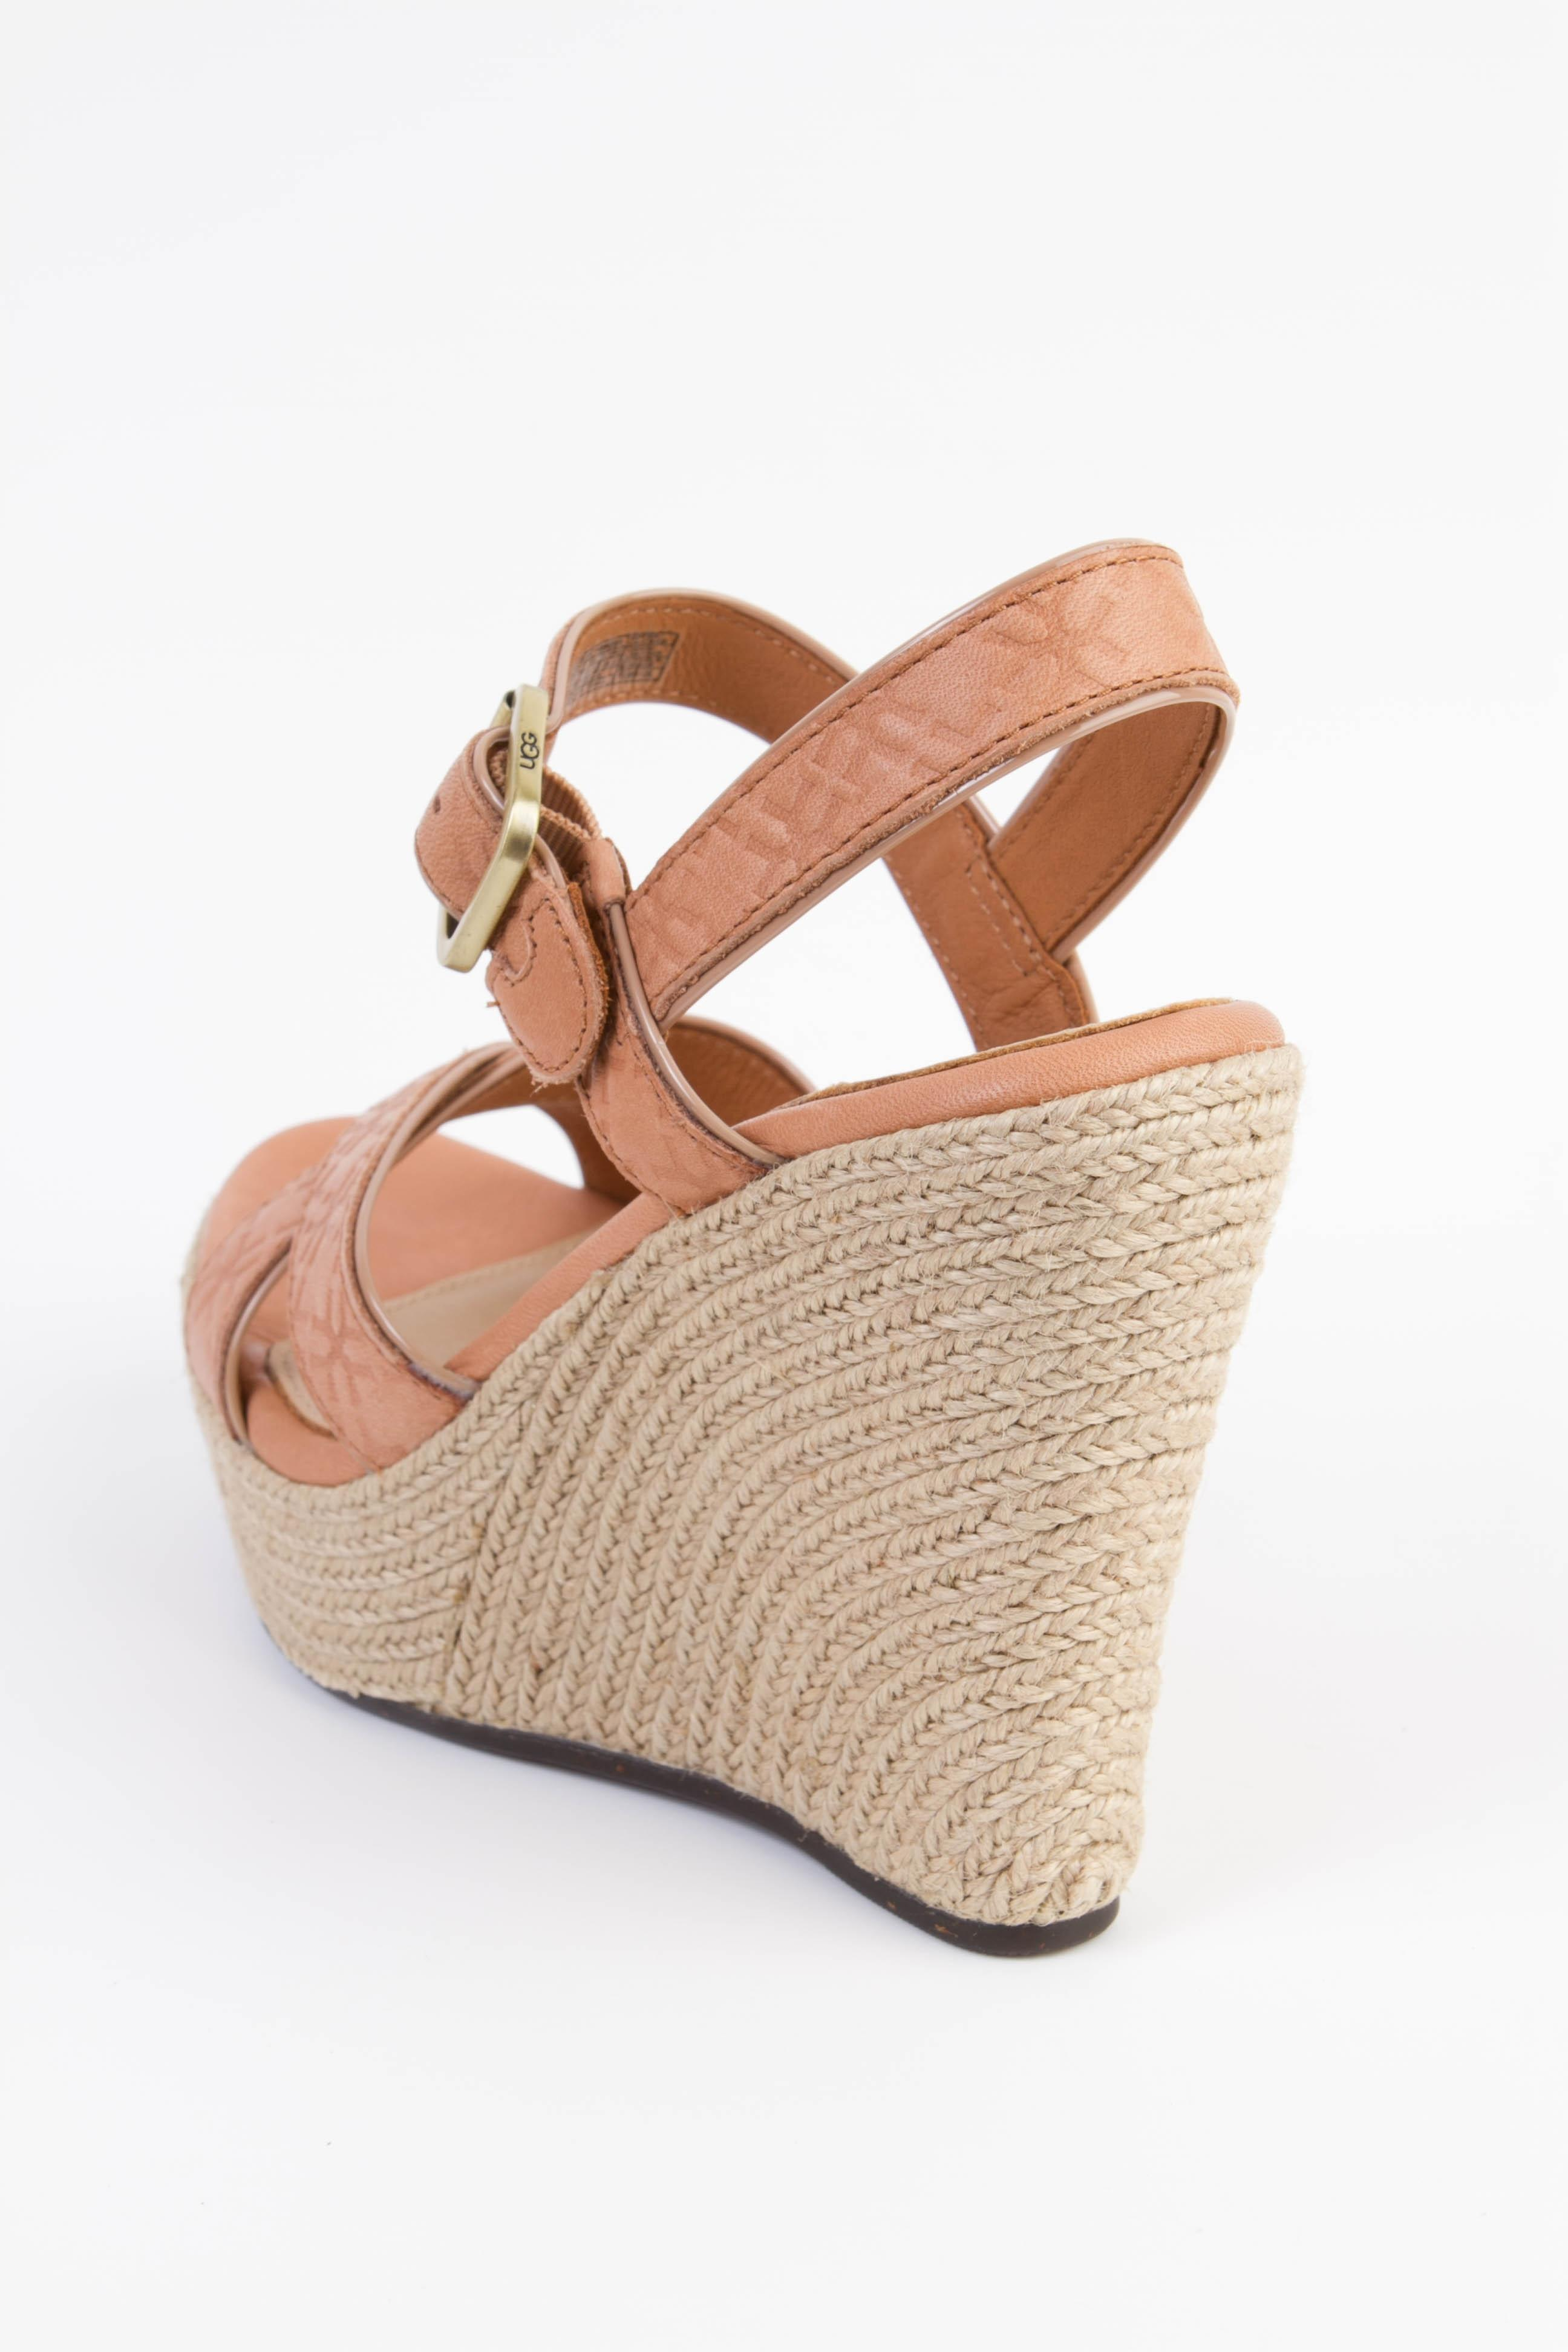 clearance under $60 cheap authentic outlet UGG Australia Embossed Platform Wedges under $60 online O720rSS